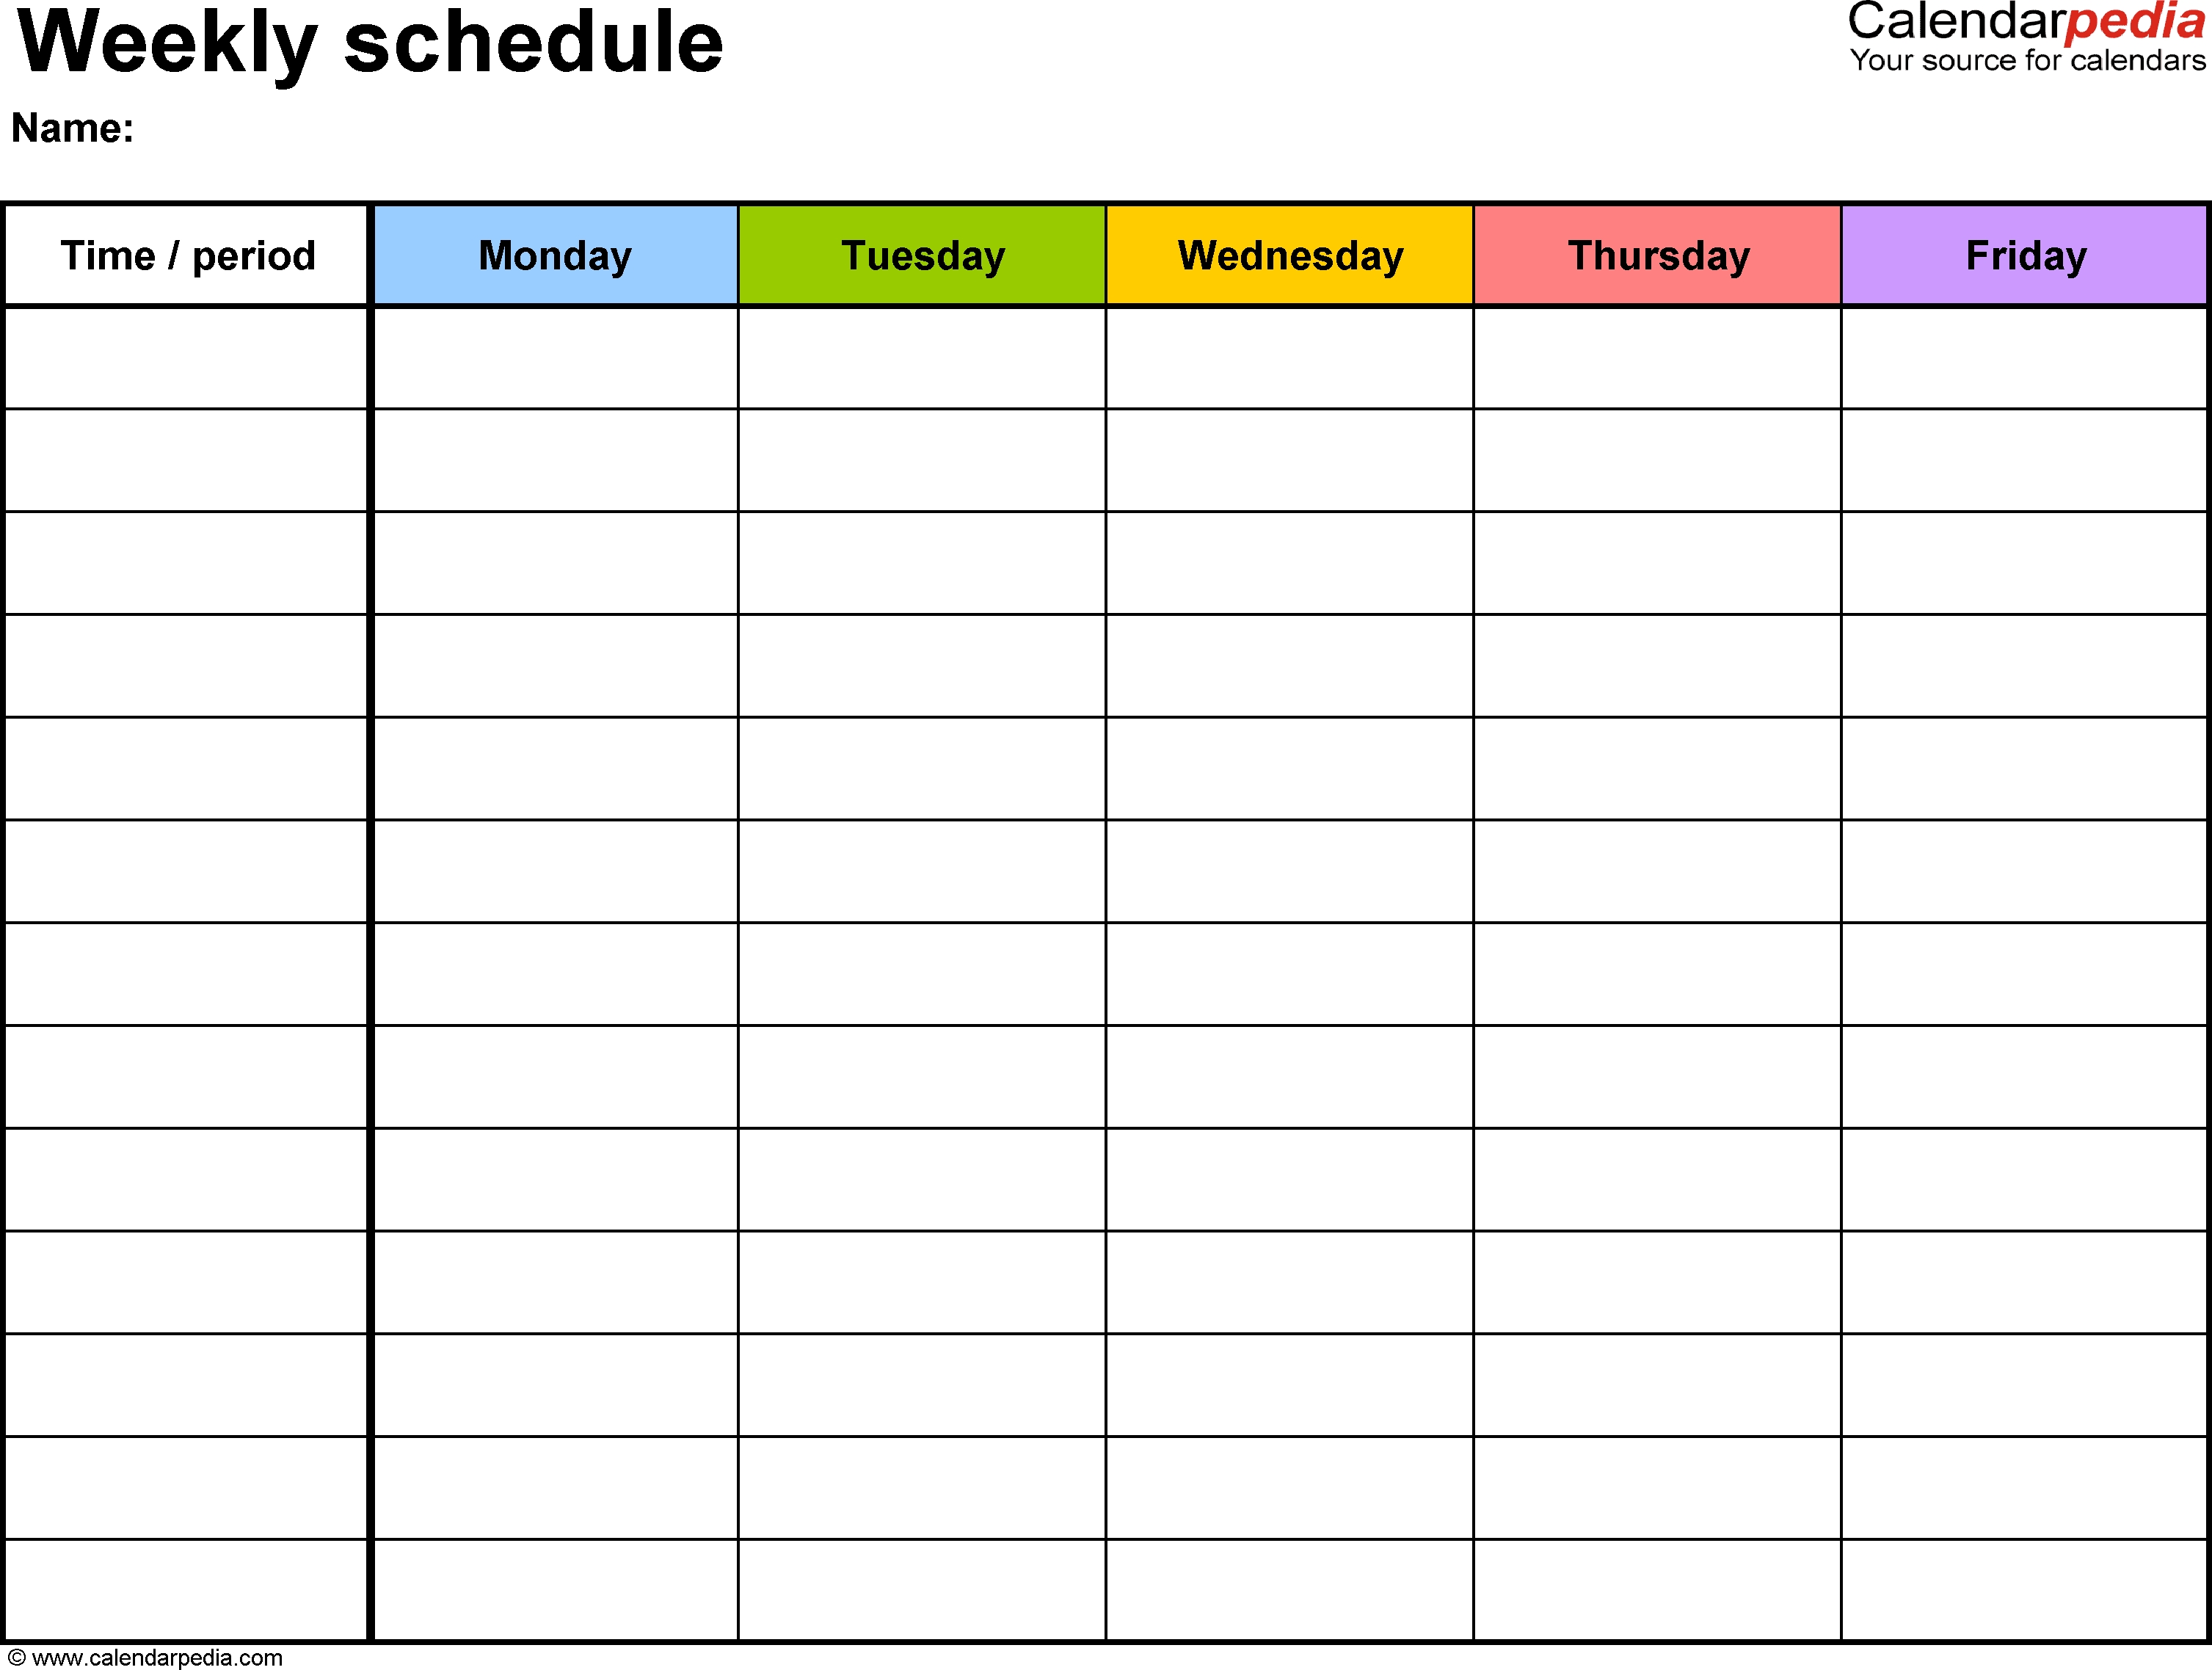 Free Weekly Schedule Templates For Word - 18 Templates intended for 5 Day Blank Calendar Printable